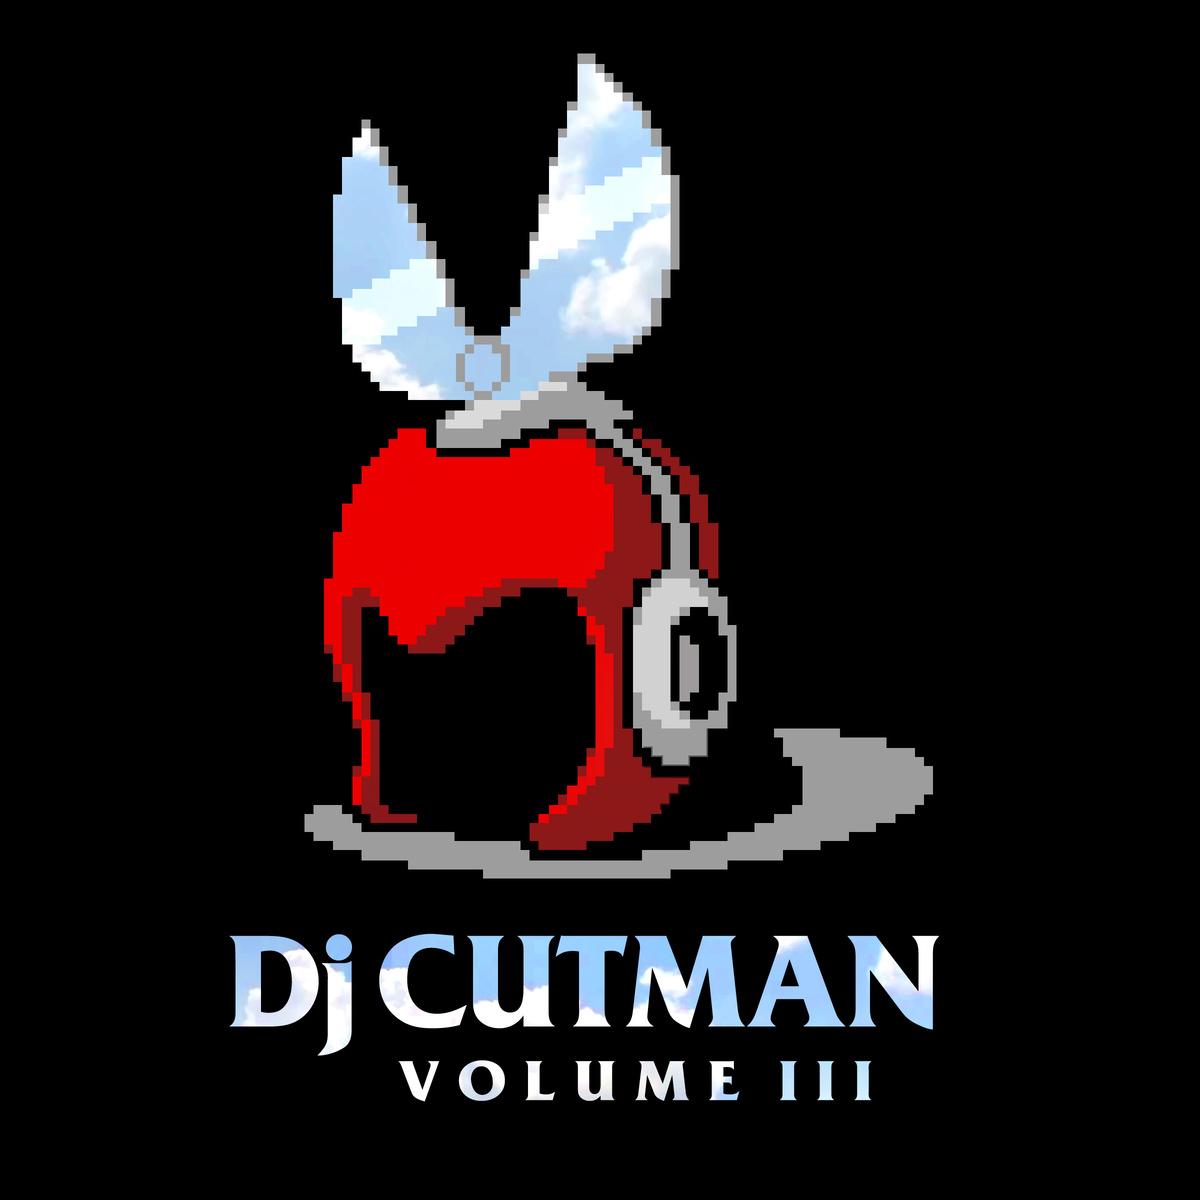 After a dope Livestream party last night on DJ Cutman's Twitch, it is now available! With remixes from games like Star Tropics, Link's Awakening and Sonic 2, it's def worth checking out! how do you feel about the release? Listen and Comment below!